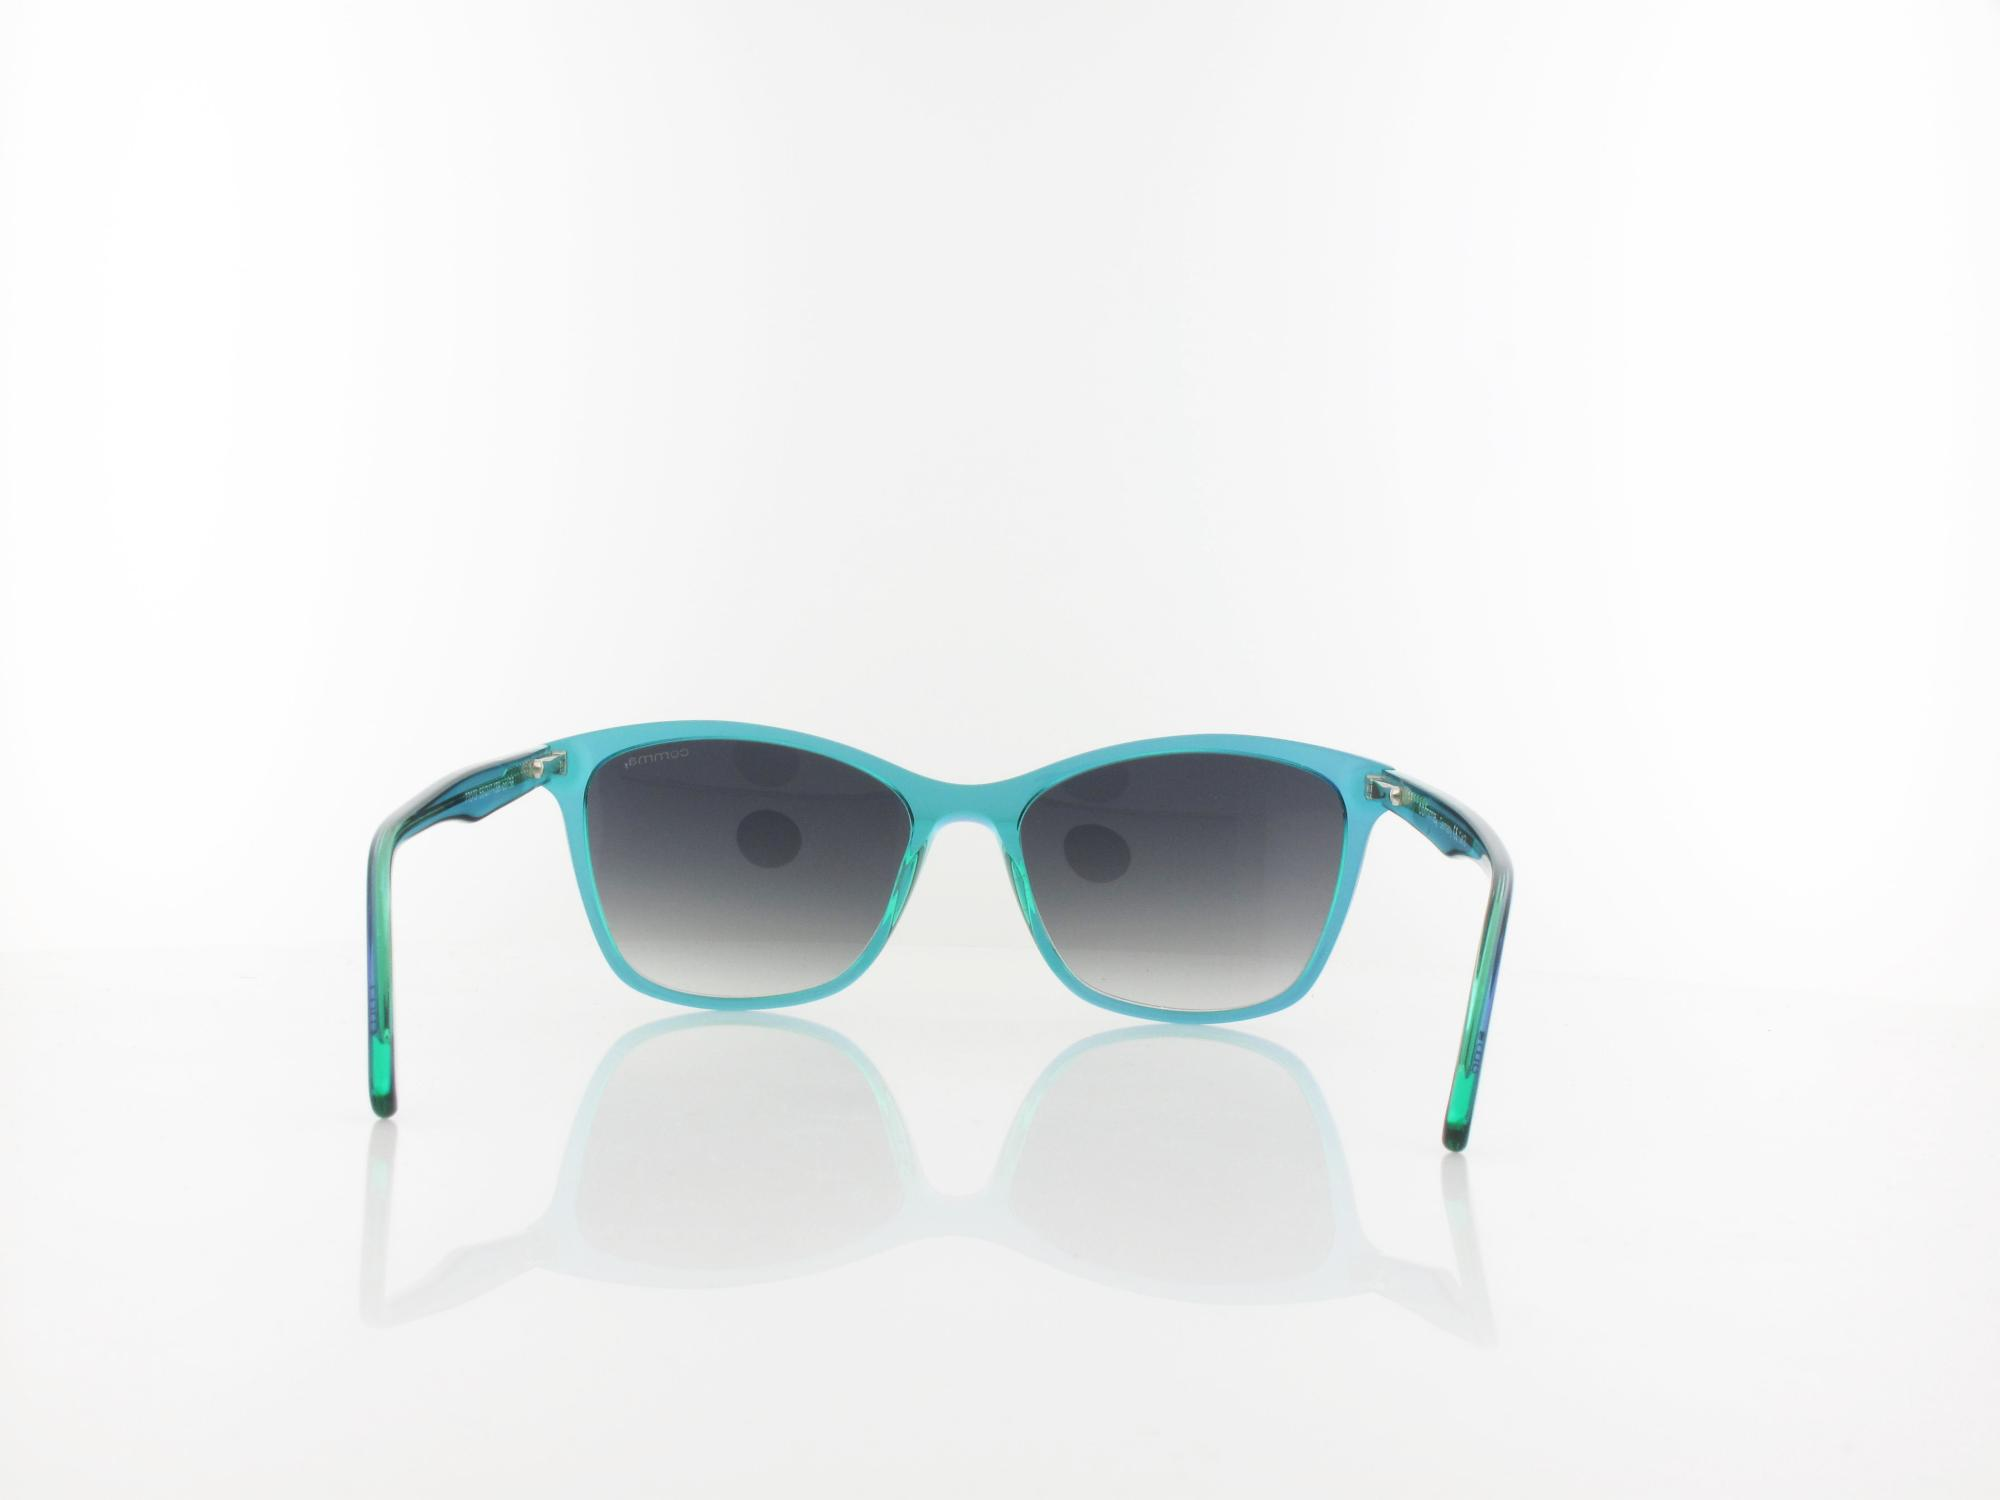 Comma | 77073 58 55 | turquoise transparent / green gradient